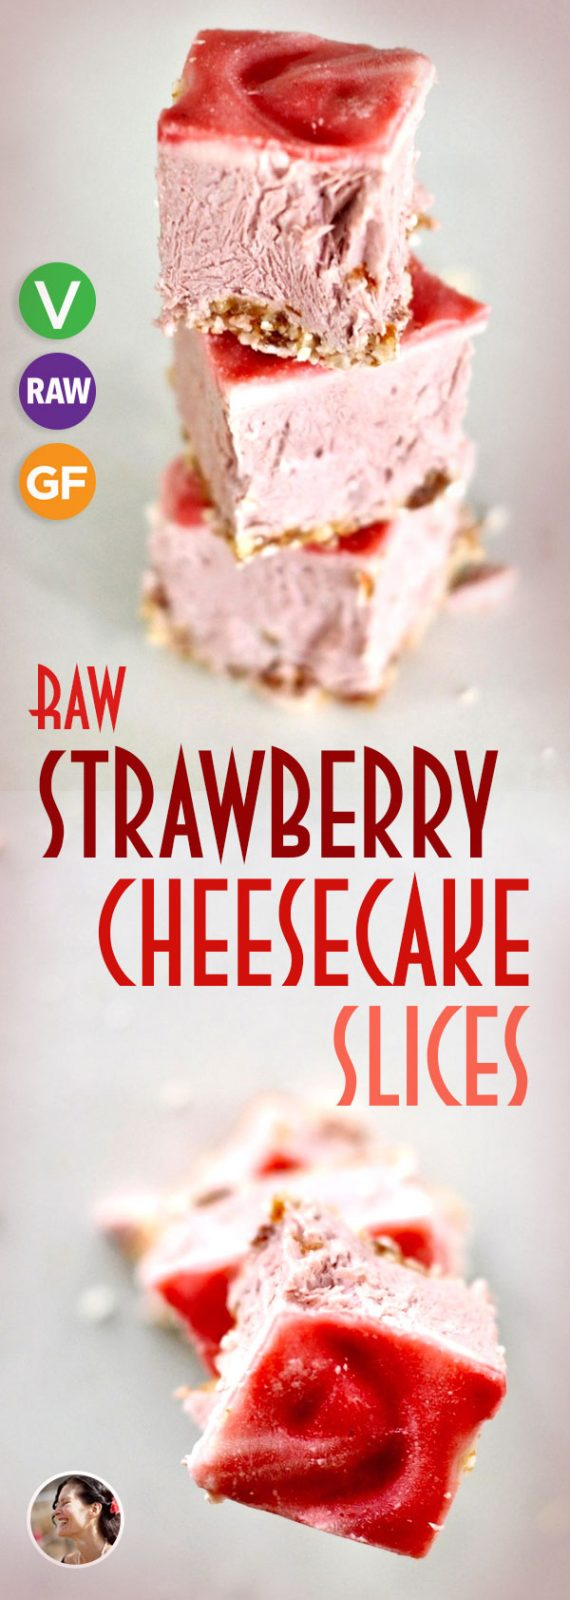 Vegan Strawberry Cheesecake Slices